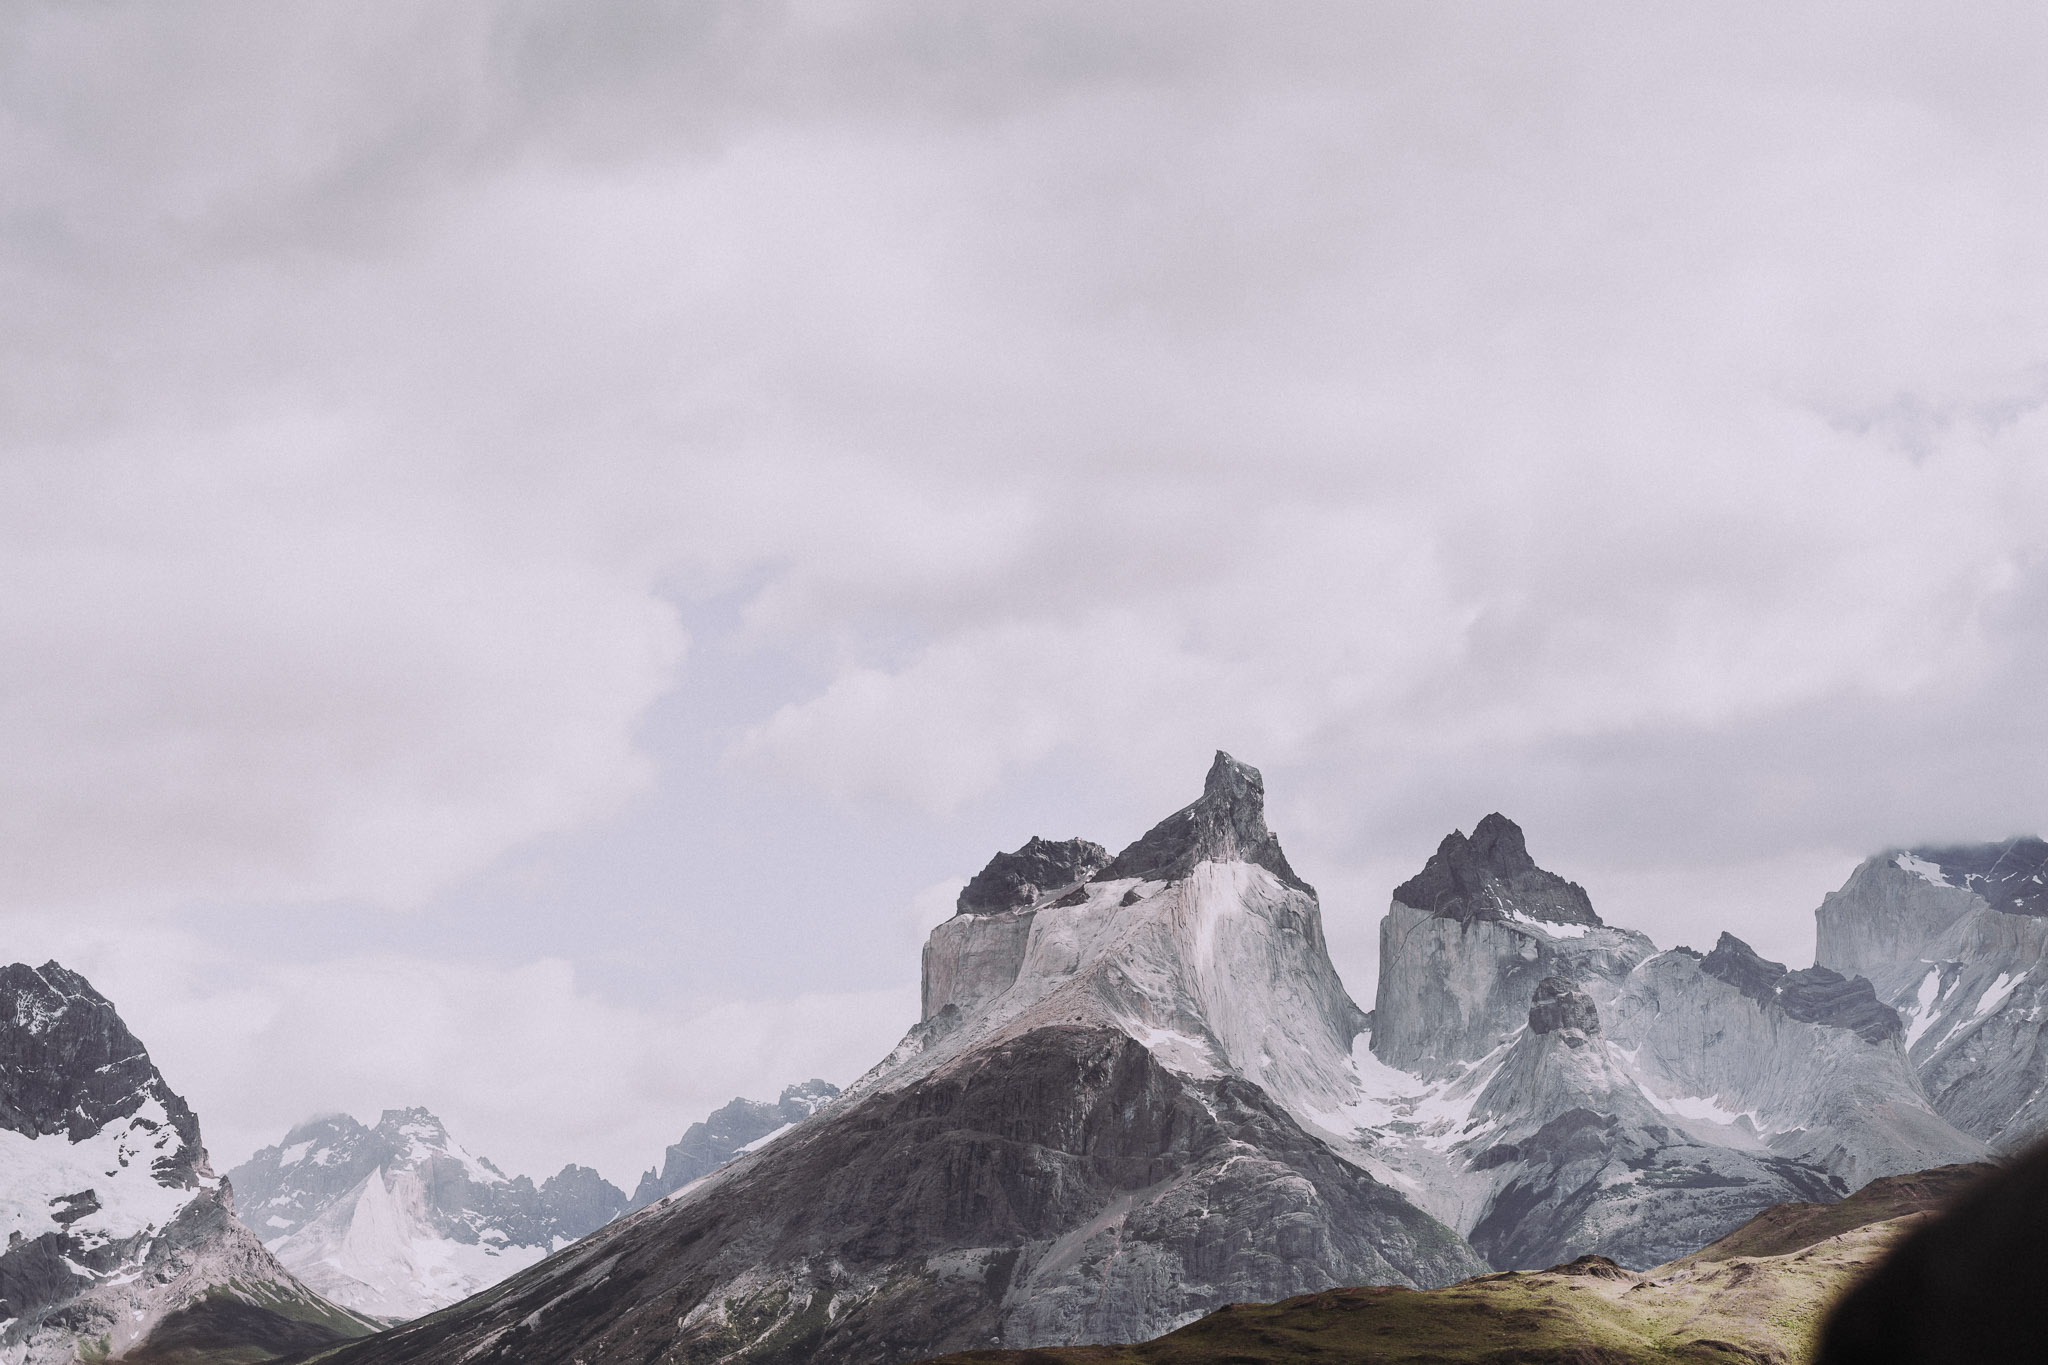 patagonia torres del paine chile by jovana rakezic